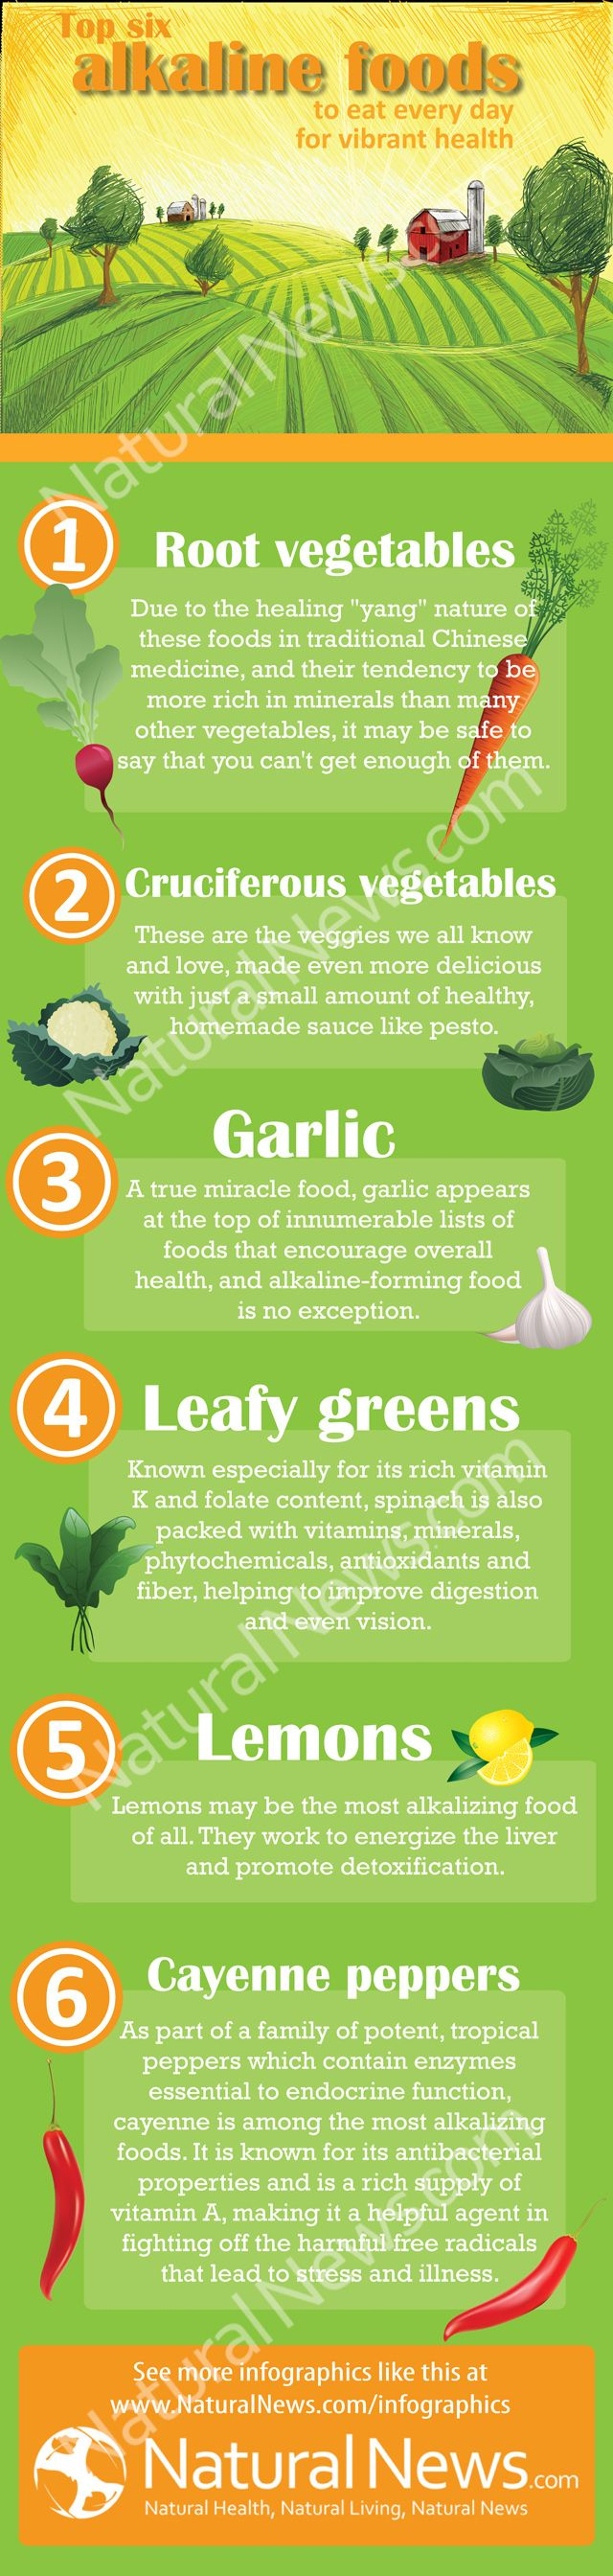 The top six alkaline foods to eat every day for for vibrant health